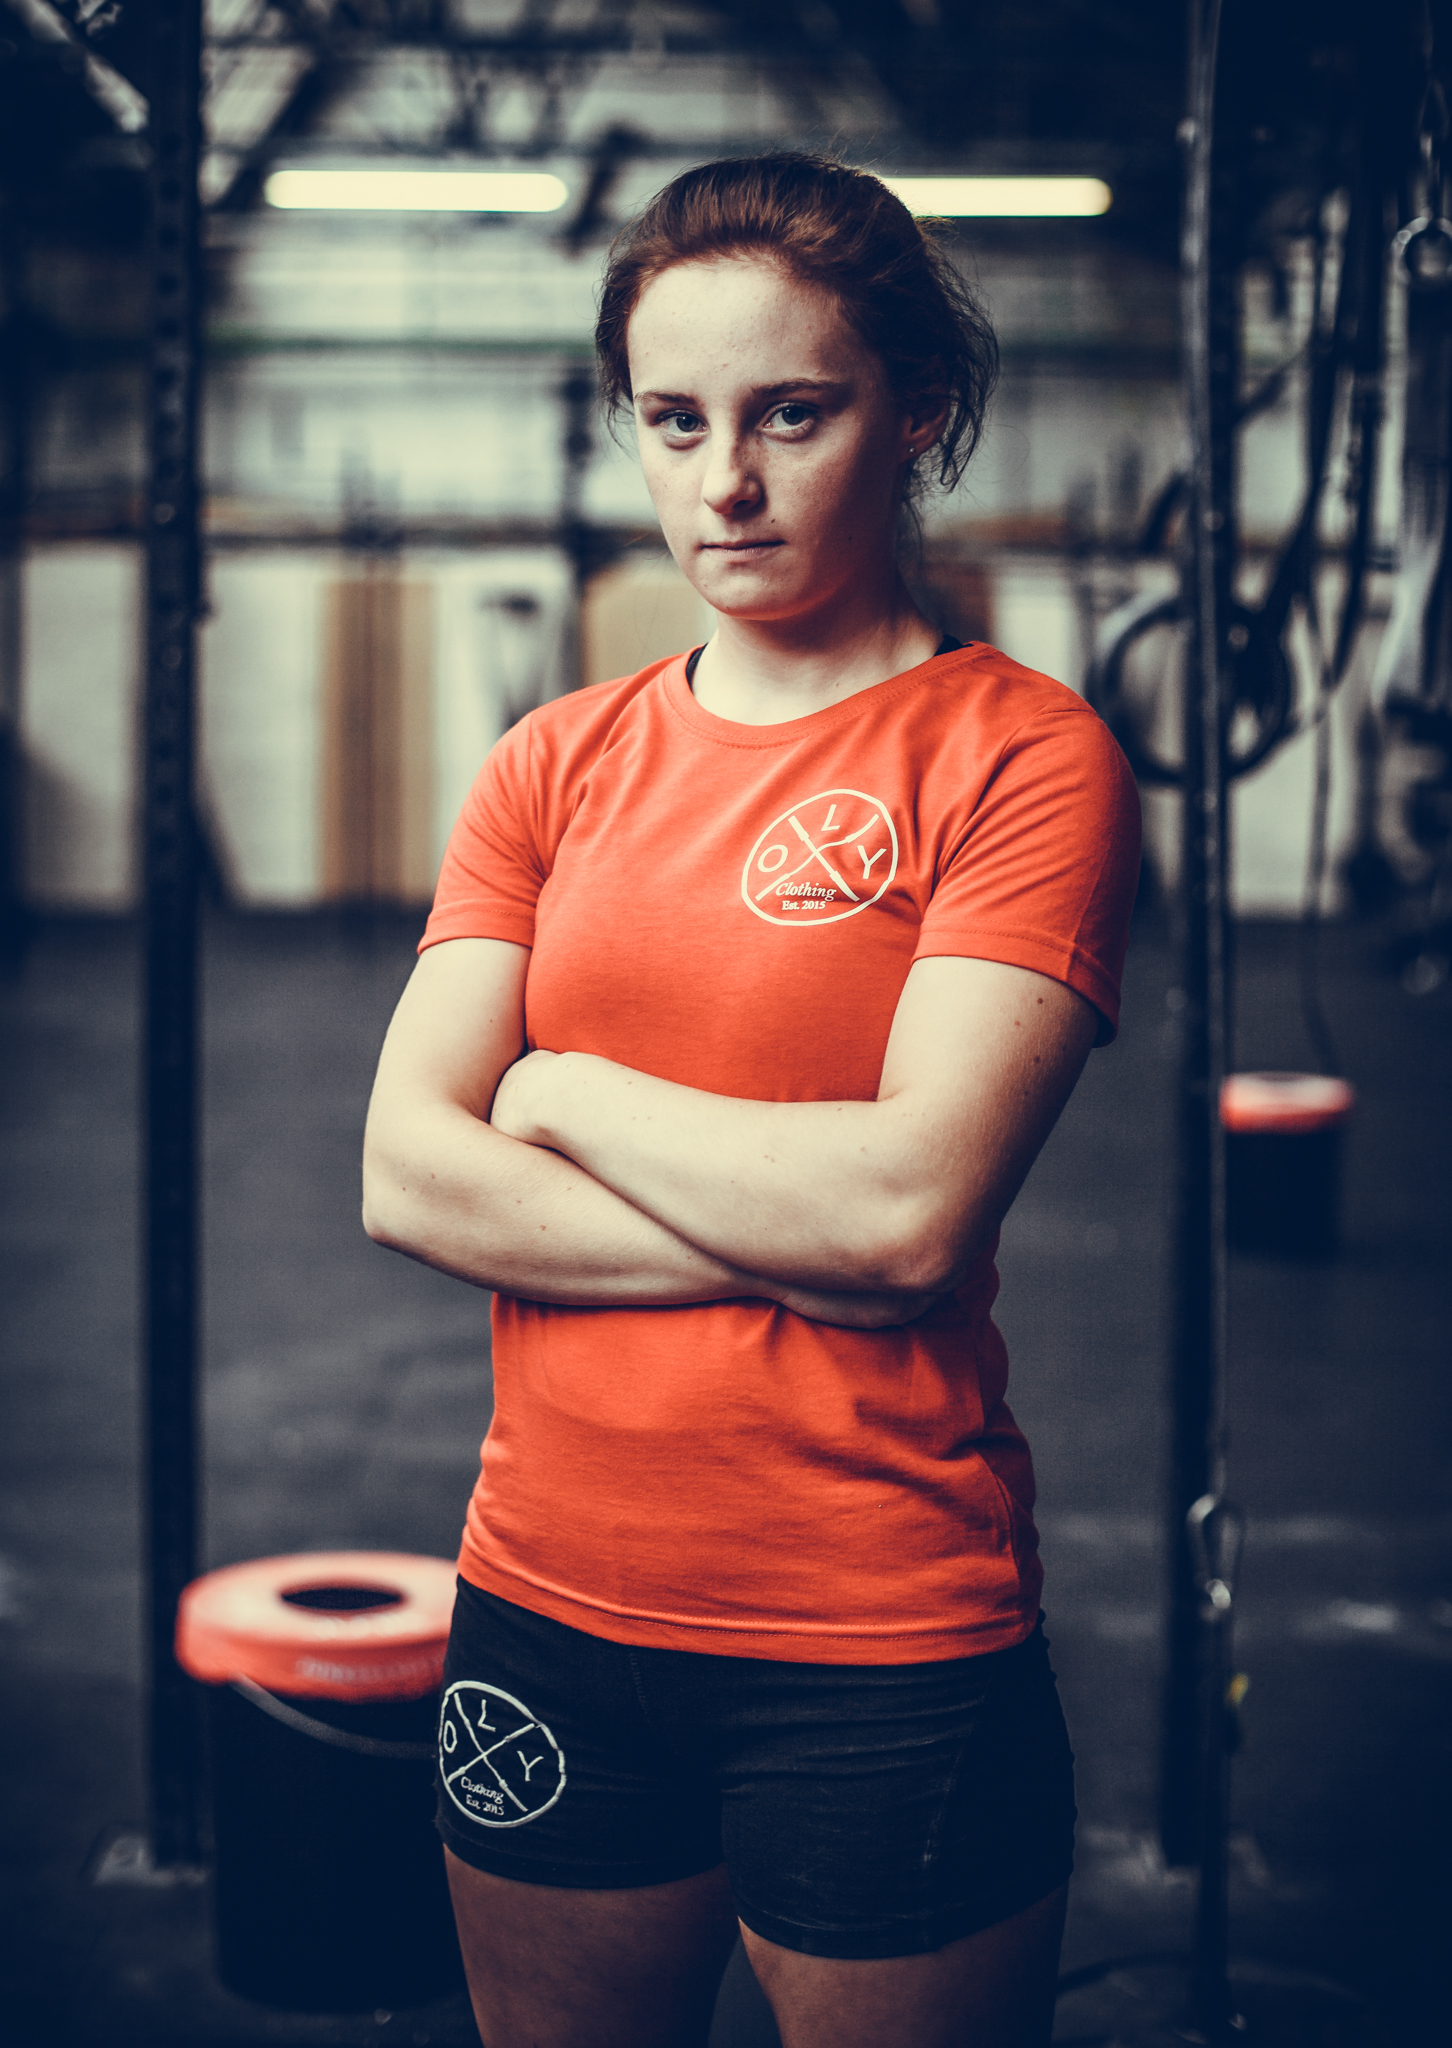 Morgan Maneely - NI Powerlifting record for squat, bench and deadlift in her Age Group.Crossfit Open 2017 1st in all Ireland and U.K and 4th in Europe.